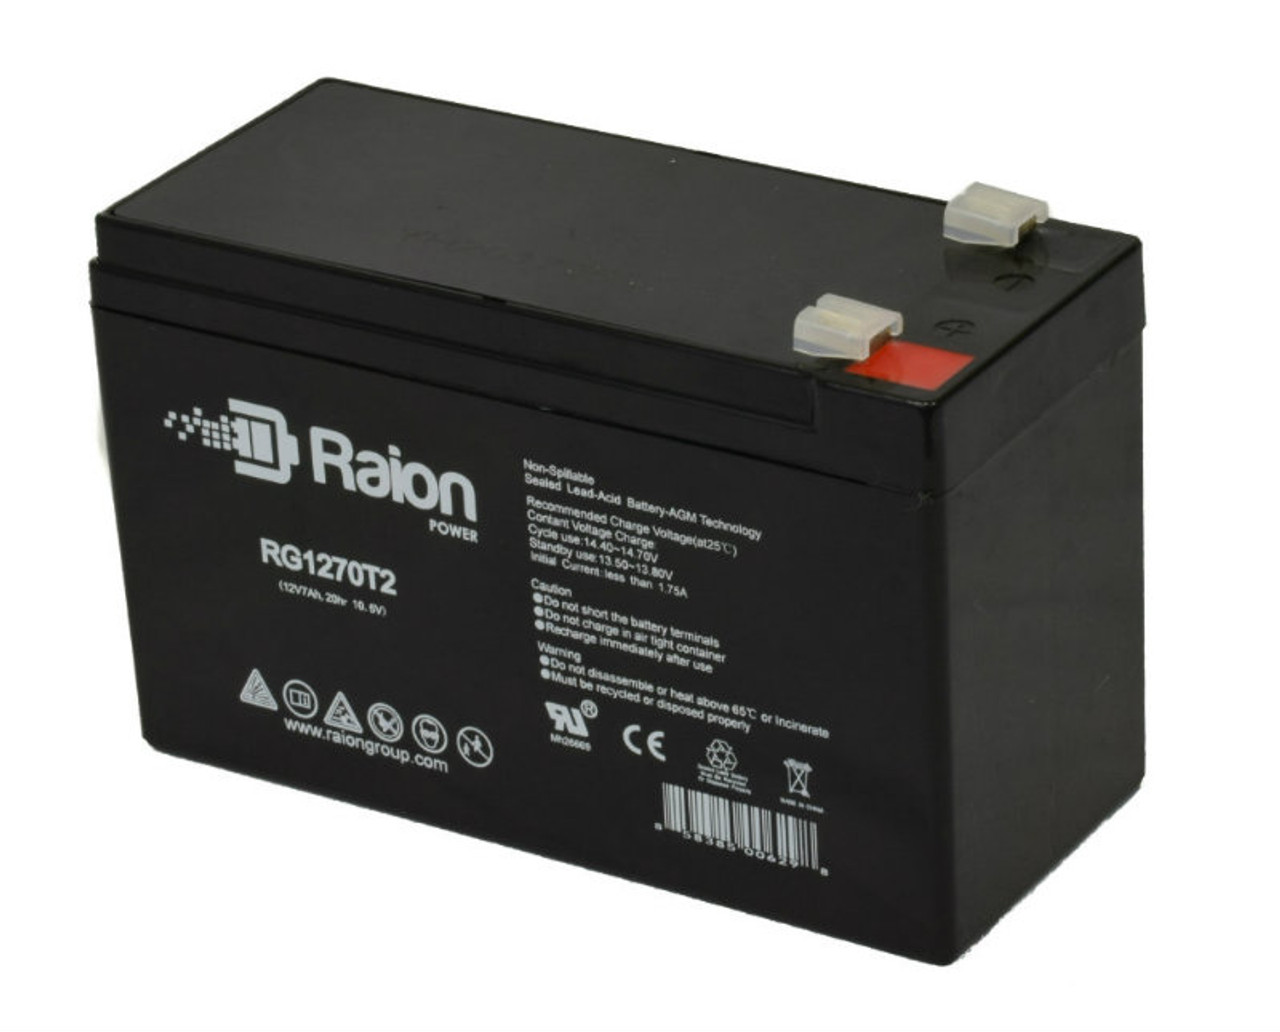 Raion Power RG1270T1 Replacement Battery for Leoch Battery DJW12-7.5